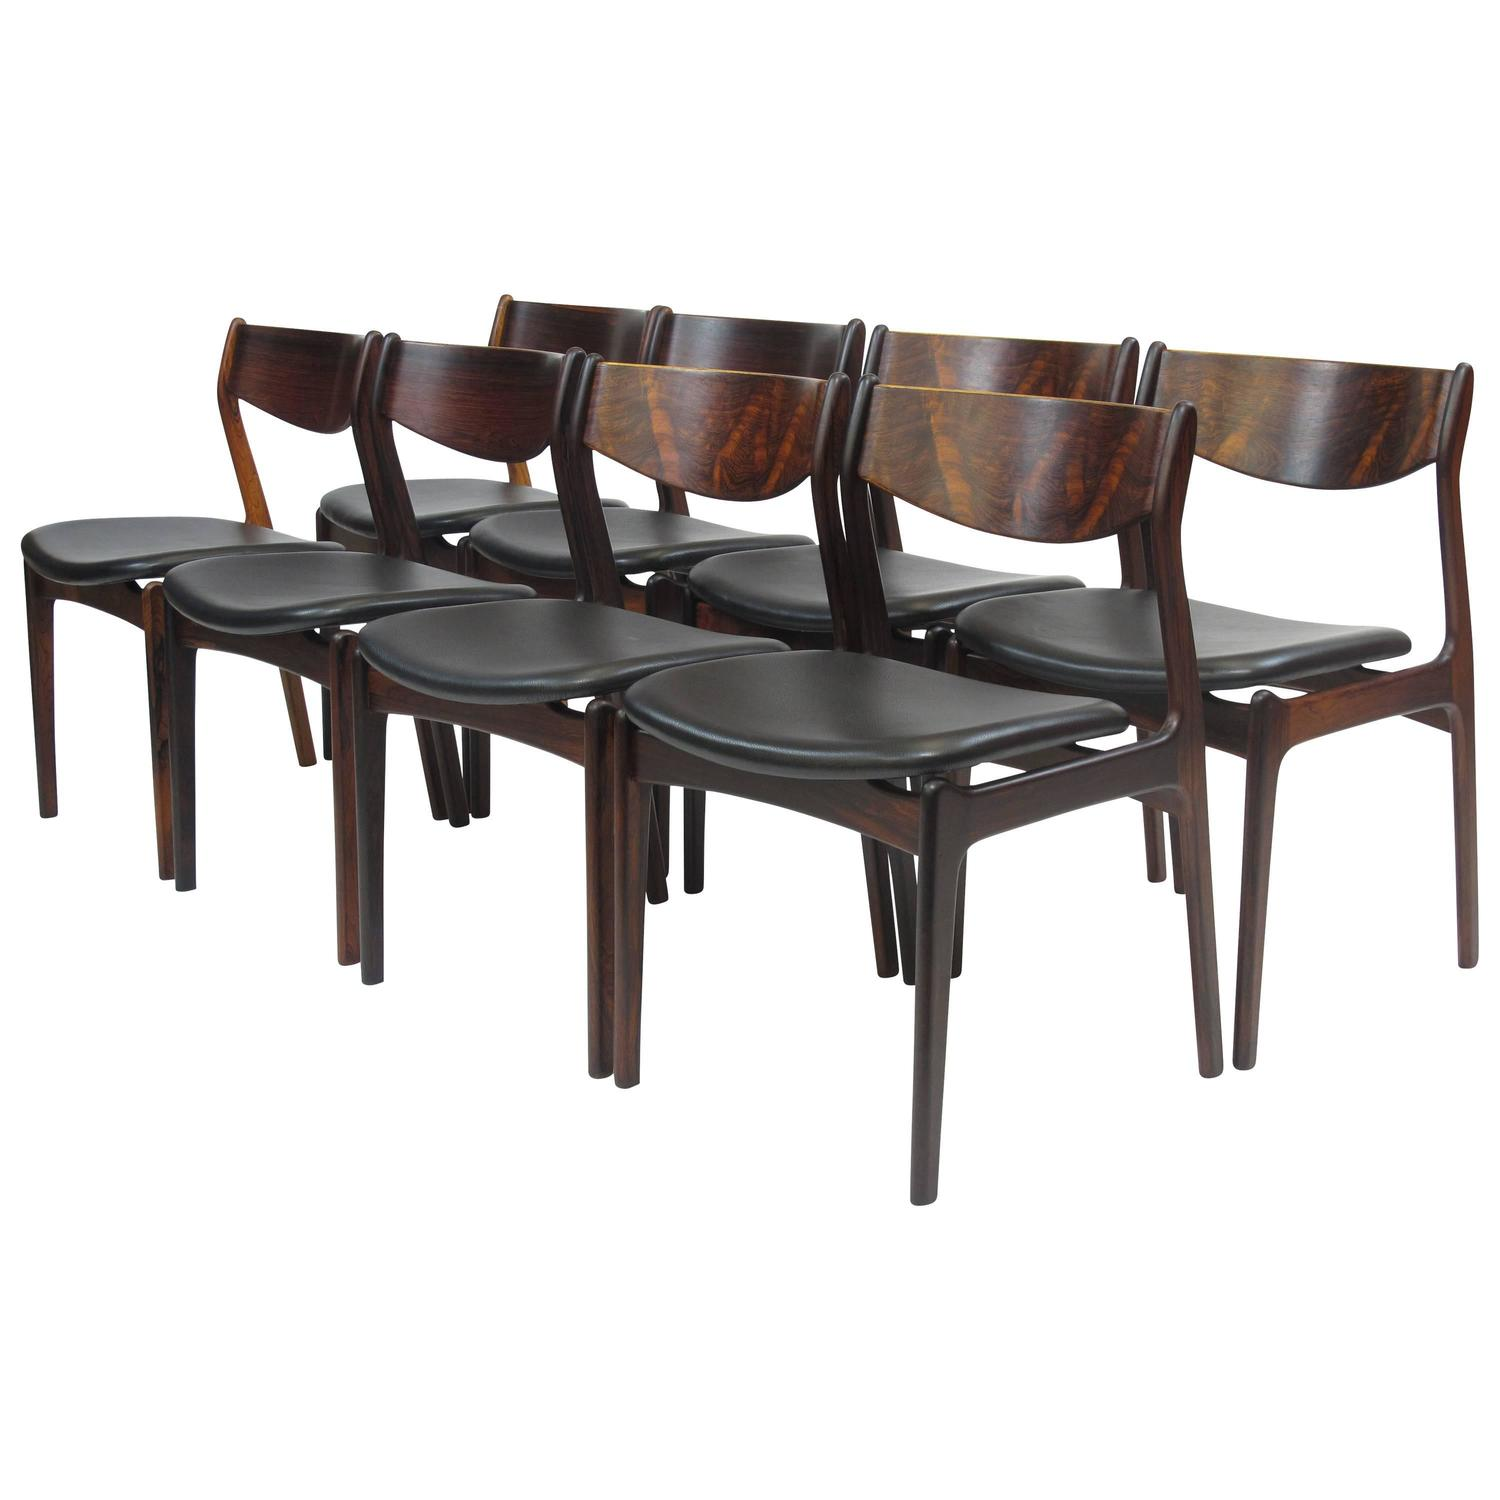 Black Leather Dining Room Chairs Eight Jorgensen Danish Rosewood Dining Chairs In Black